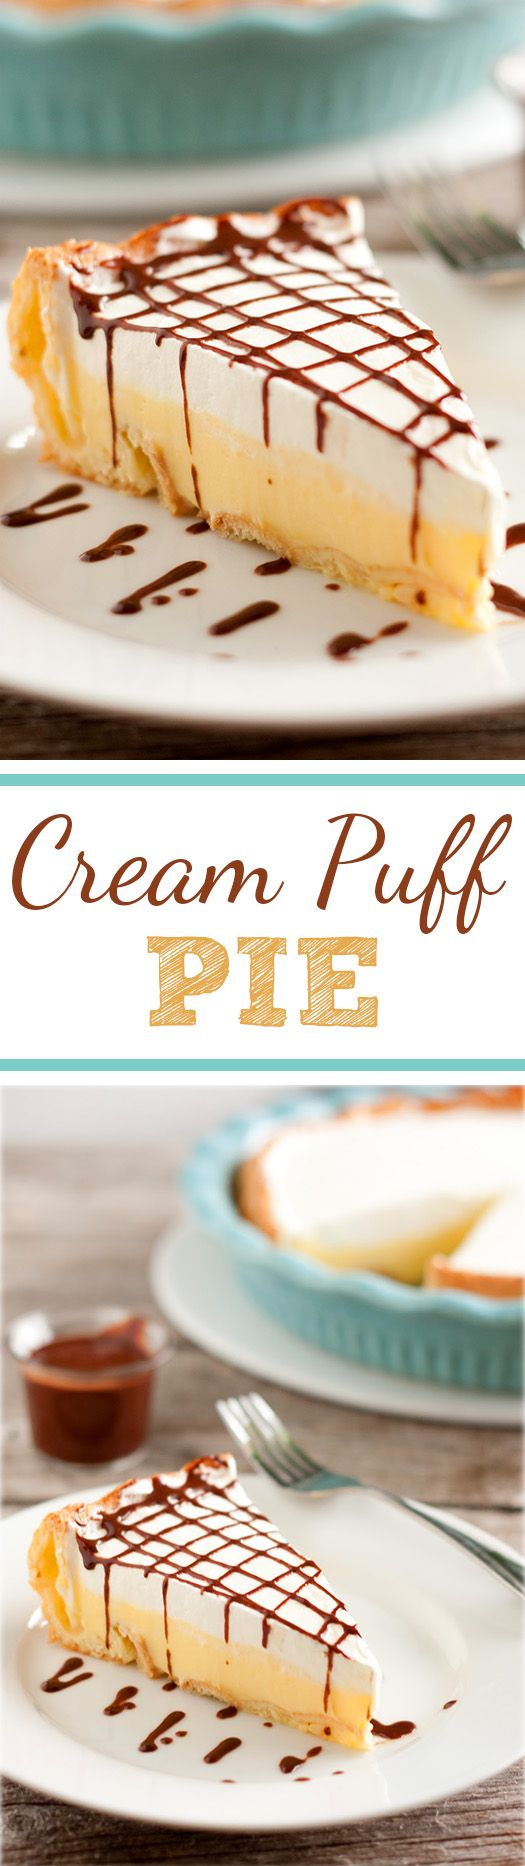 Cream Puff Pie - this is the EASIEST pie you'll ever make and it tastes just like a cream puff! Everyone is always fighting for the last slice when I take it to parties!